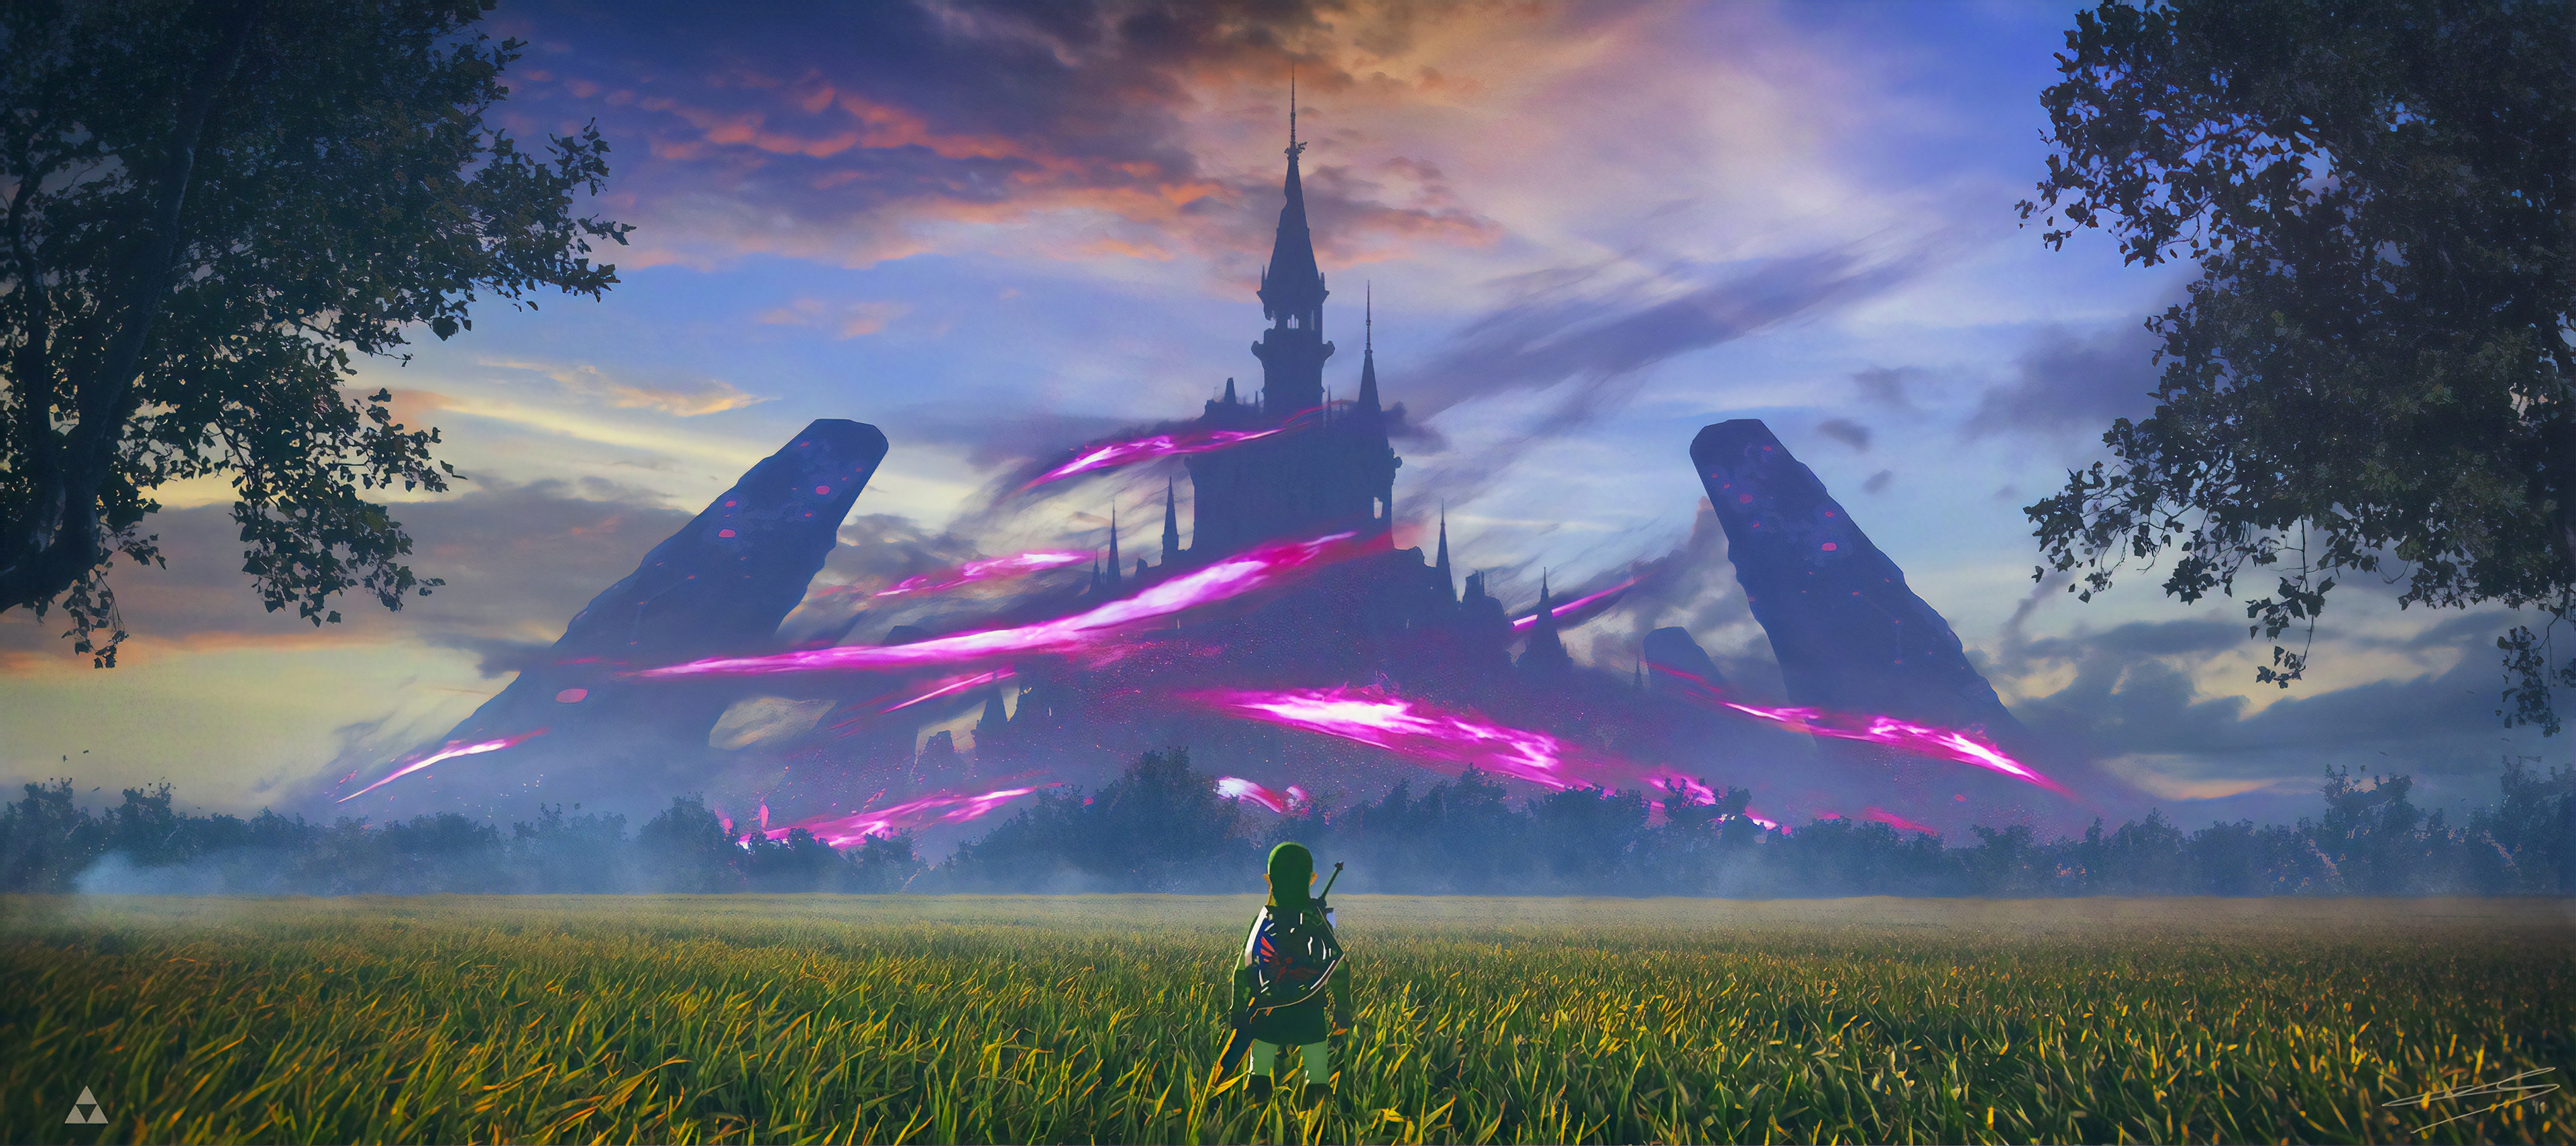 1366x768 Zelda 4k 1366x768 Resolution Hd 4k Wallpapers Images Backgrounds Photos And Pictures